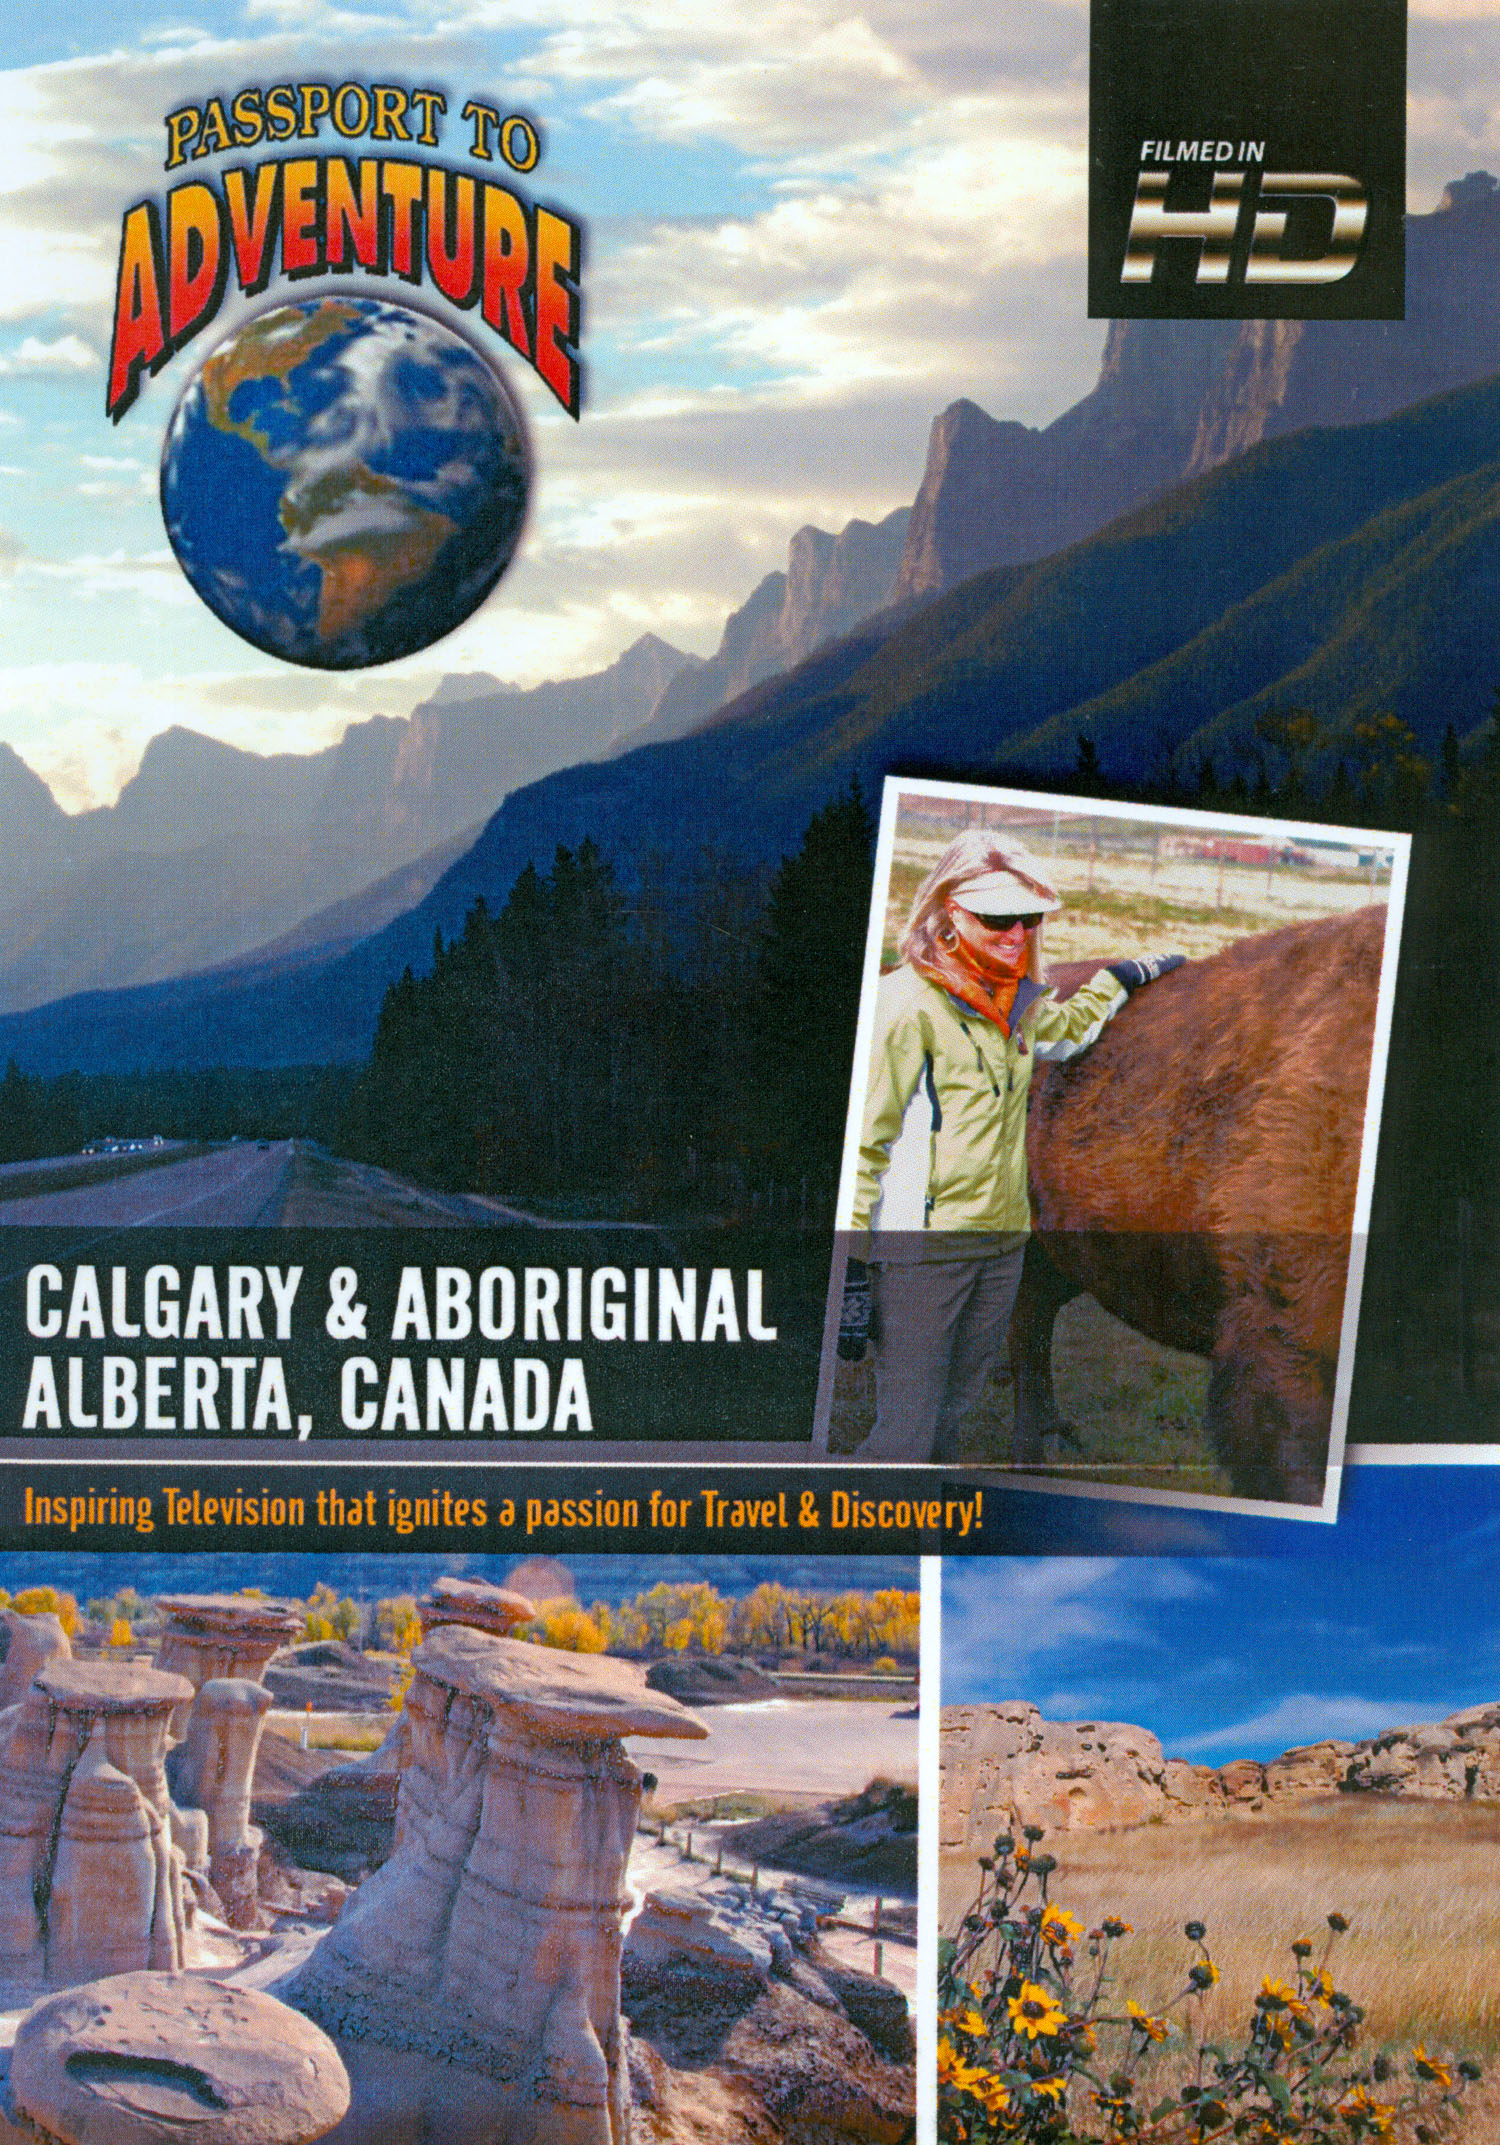 Passport to Adventure: Calgary & Aboriginal Alberta, Canada